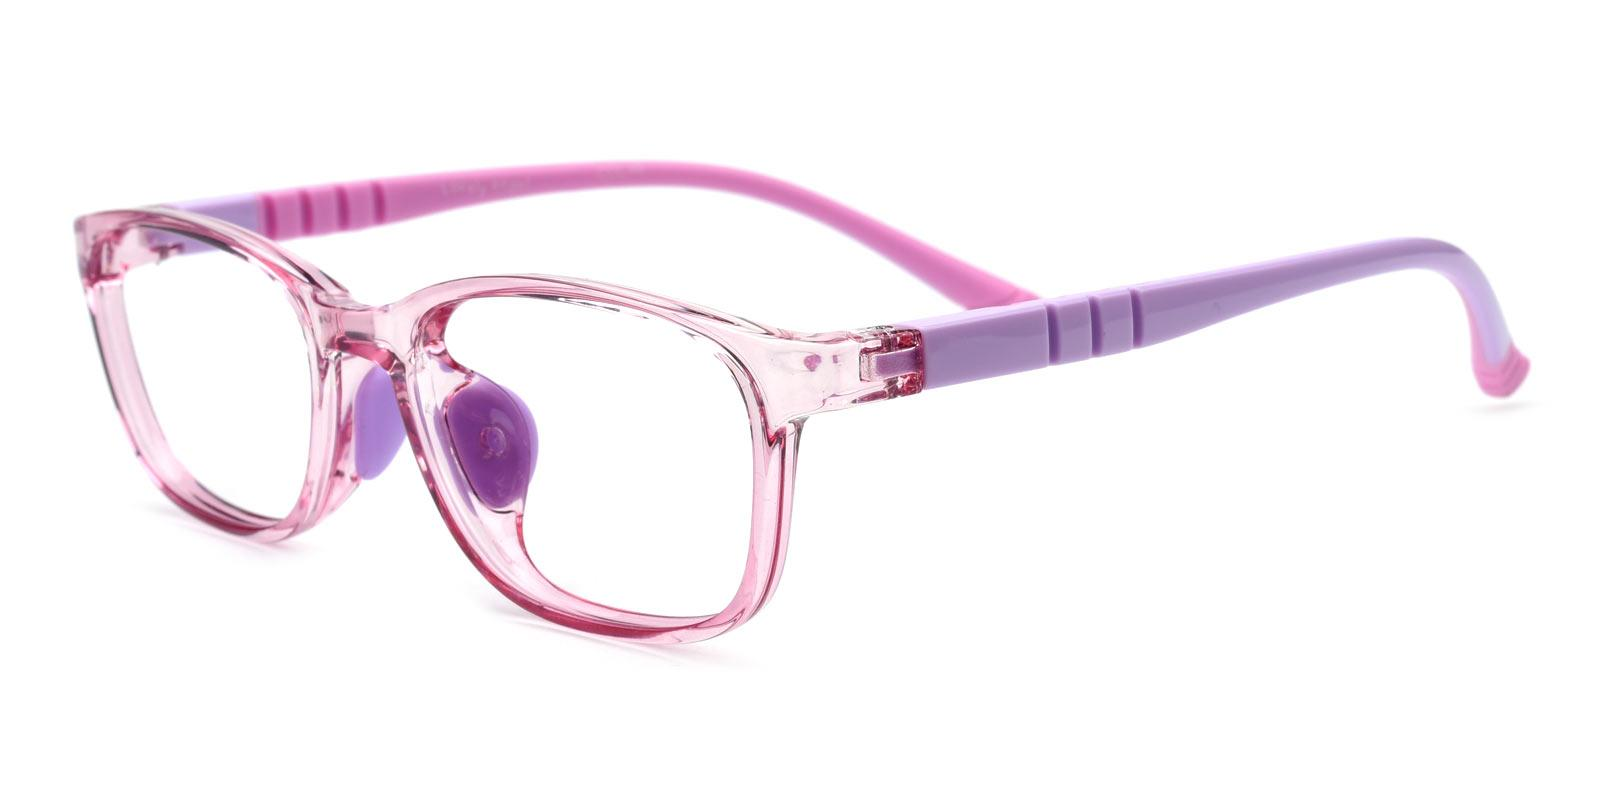 Adward-Purple-Rectangle-Combination-Eyeglasses-additional1